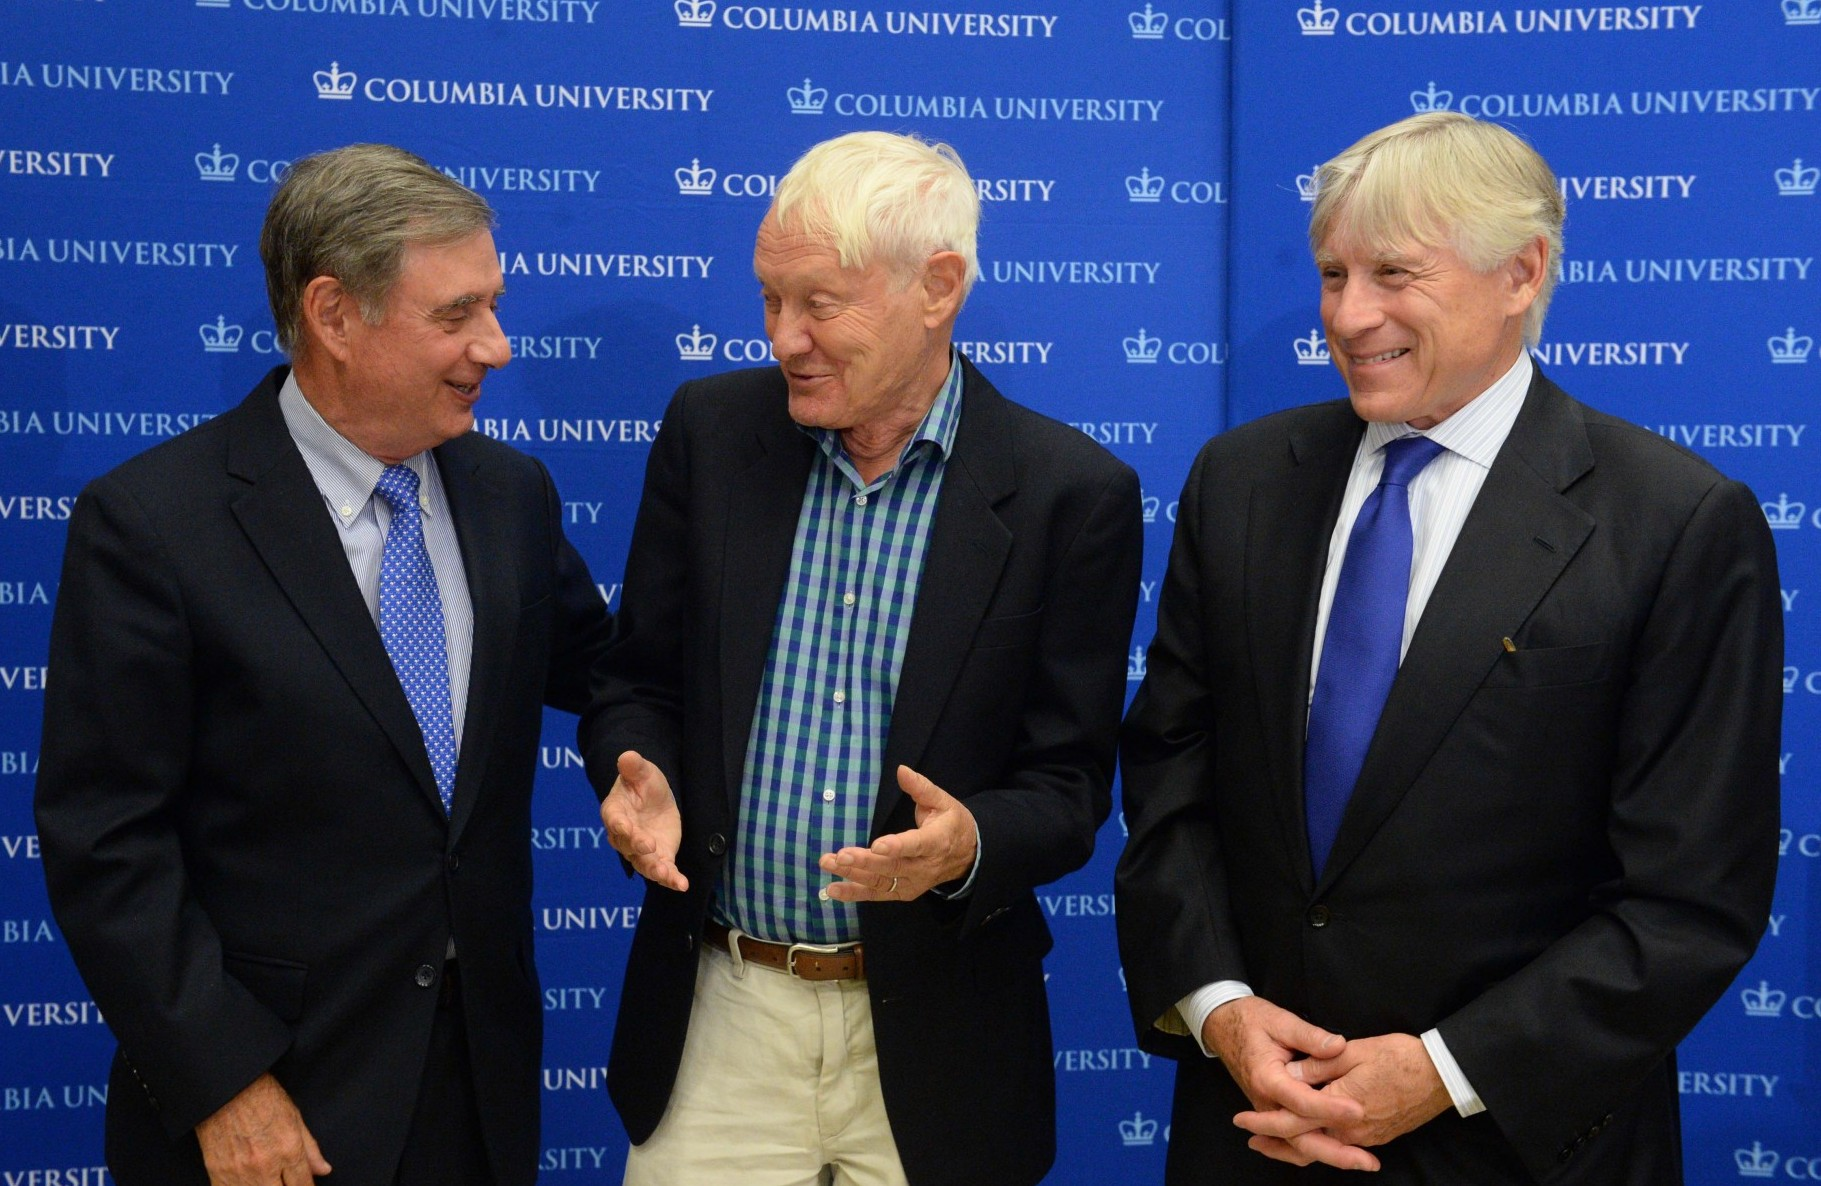 Lee Goldman, Joachim Frank and Lee Bollinger stand together after the celebration for the 2017 Nobel Prize in Chemistry is announced.